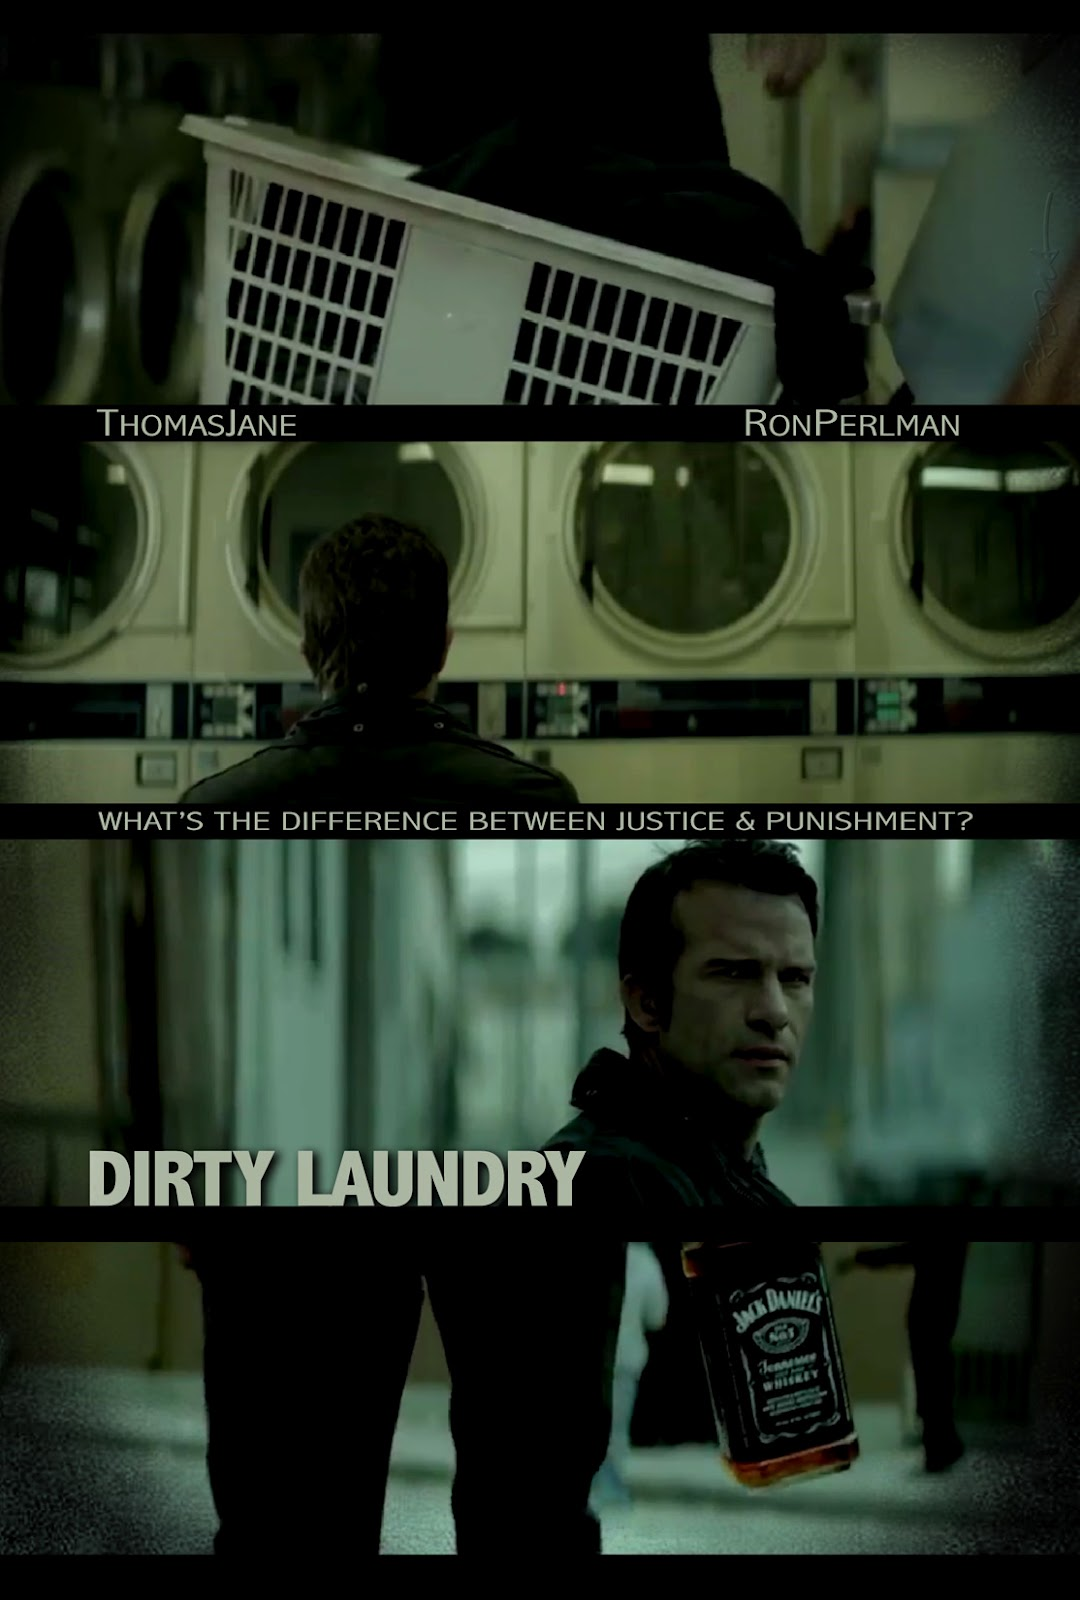 http://portodiao.com/wp-content/uploads/2012/09/Dirty-Laundry.jpg